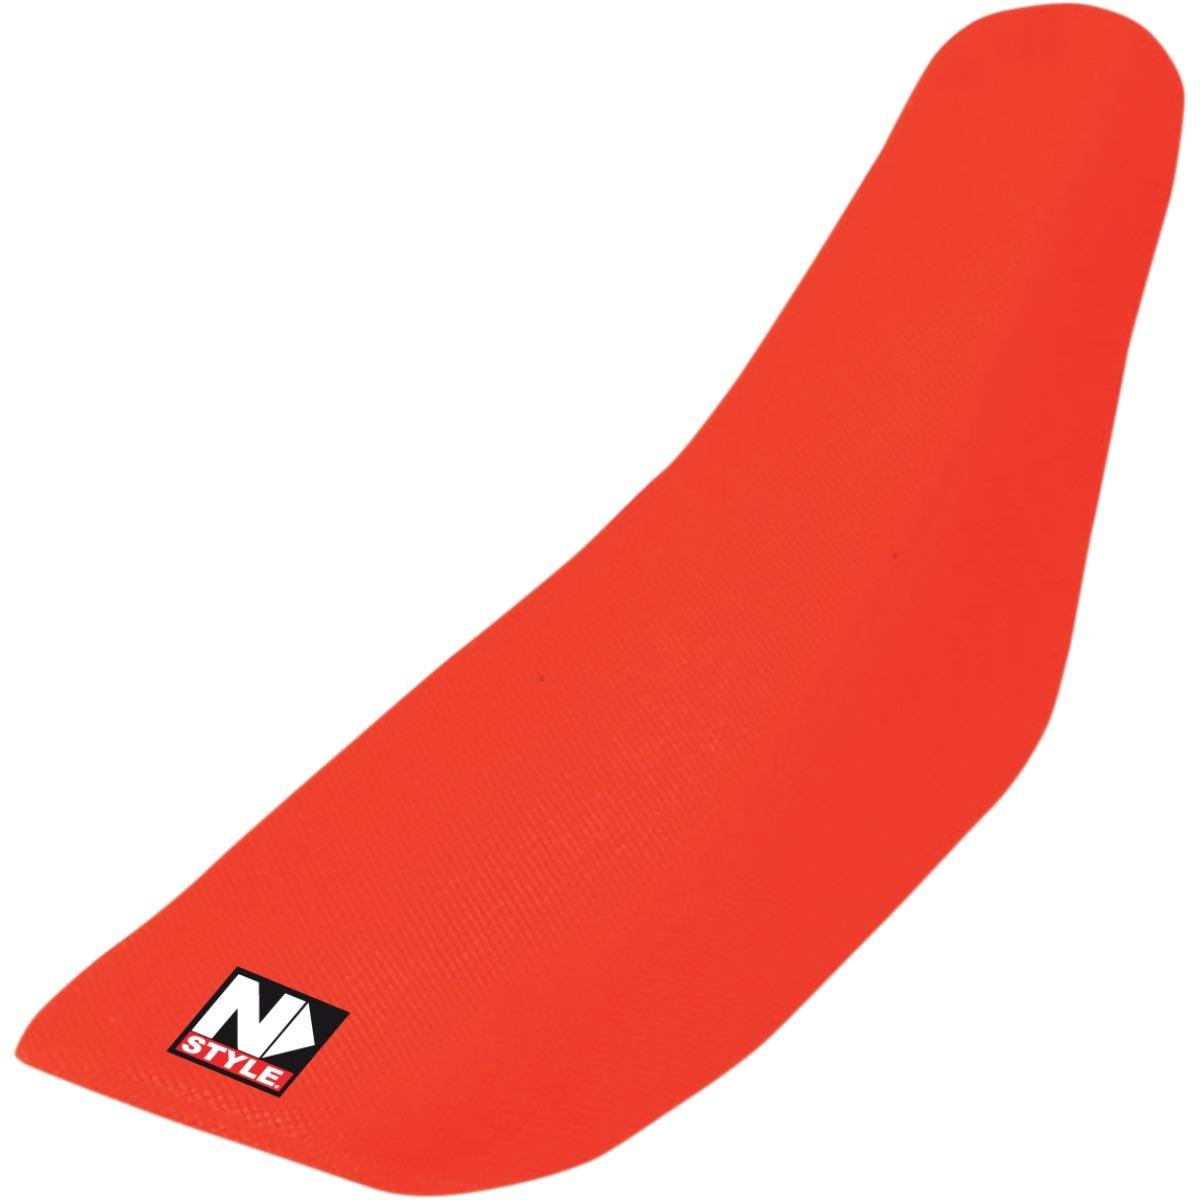 05-08 HONDA CRF450R: N-Style All-Trac 2 Gripper Seat Cover (Standard) (Red) LEPAZA67220 Z19-3593